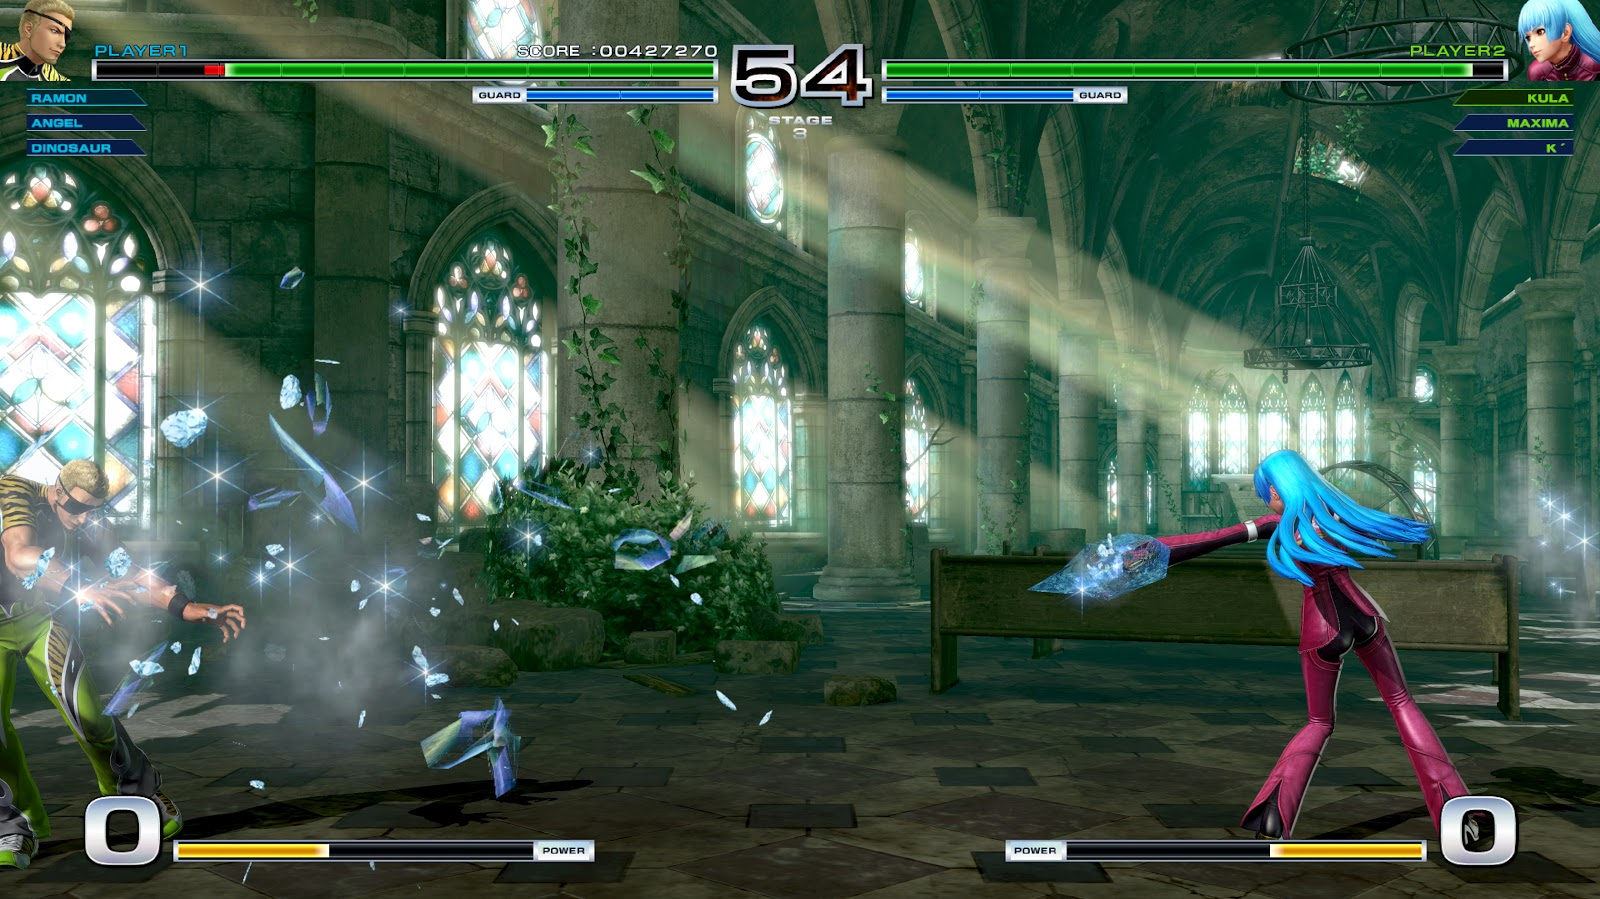 KOF XIV seems to have an annoying bug these days where upon the round transition the screen never recovers from black.